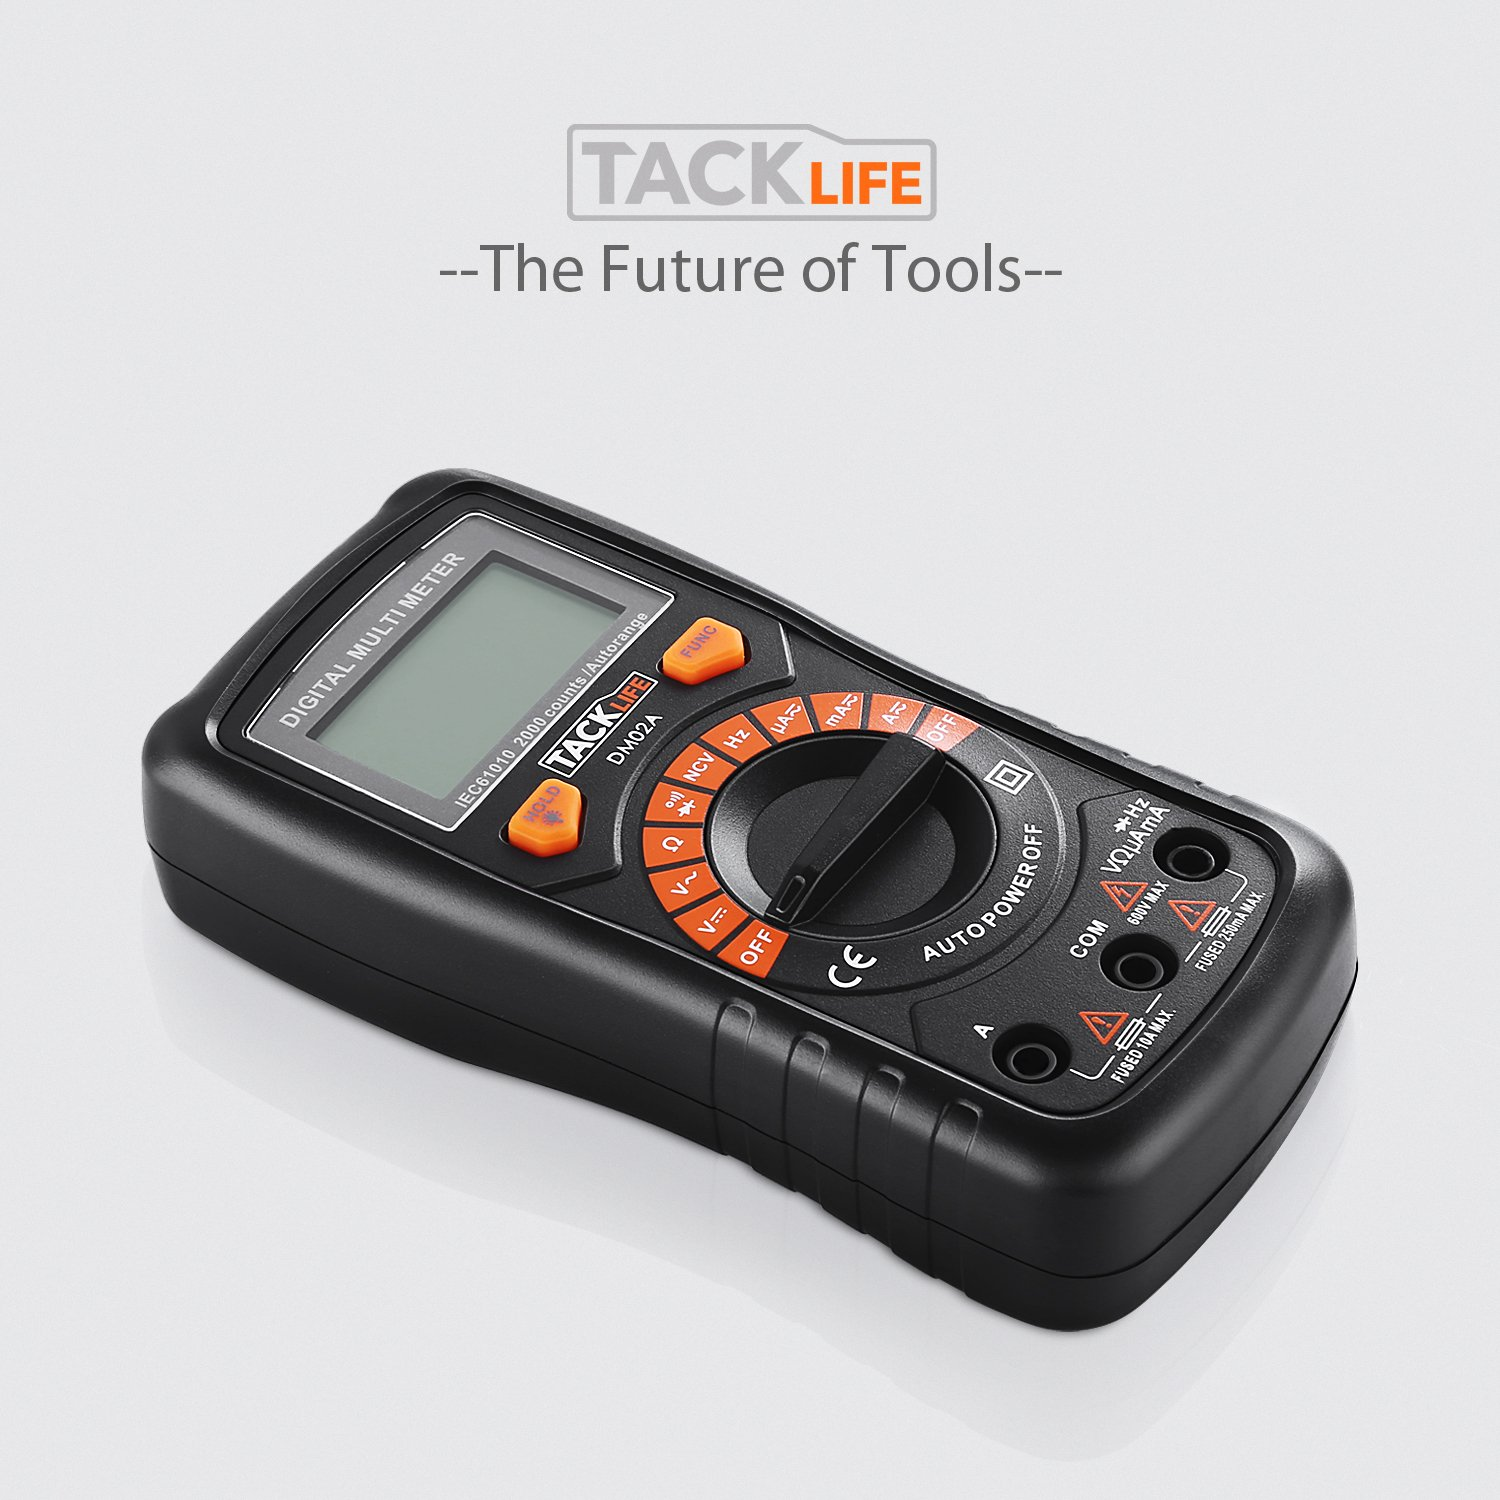 Multimeter Tacklife DM02S Auto-Ranging Digital Multimeters NCV Electrical Tester Multimeter Tester Volt Amp Ohm Diode, Continuity Test Meter LCD Backlight Measurement Tools with Screwdriver by TACKLIFE (Image #9)